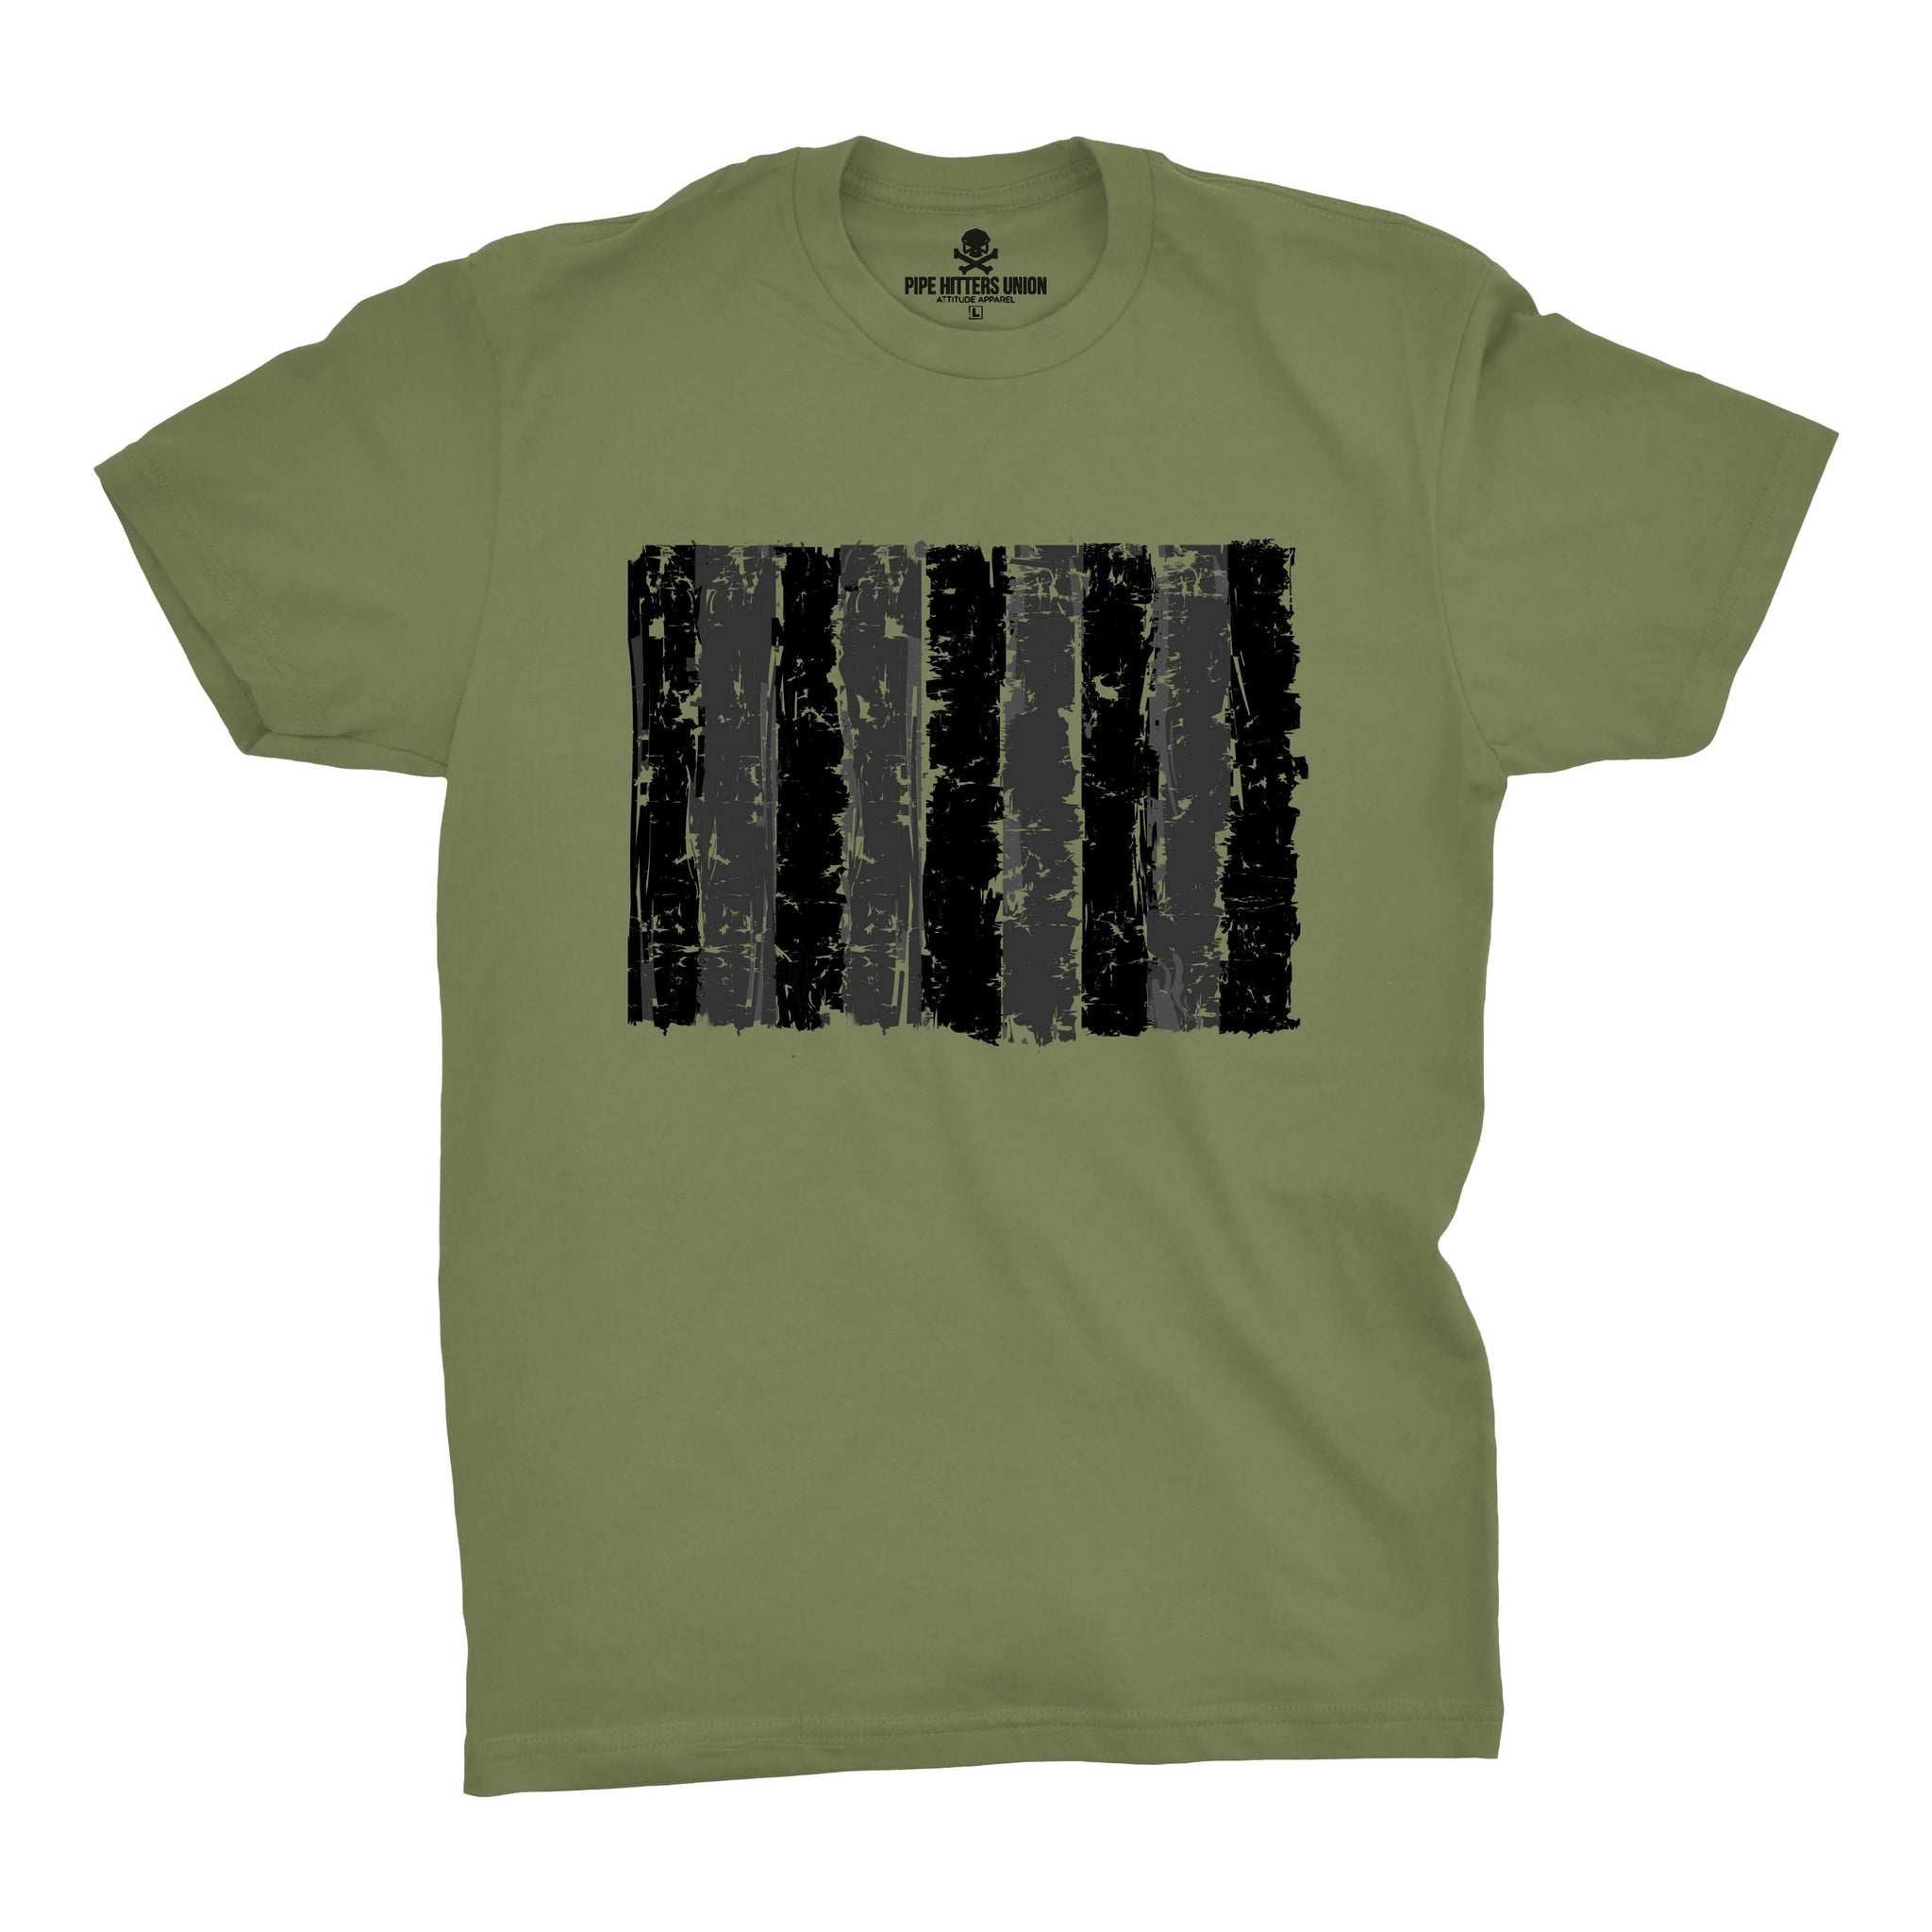 Sons of Liberty - Military Green - T-Shirts - Pipe Hitters Union